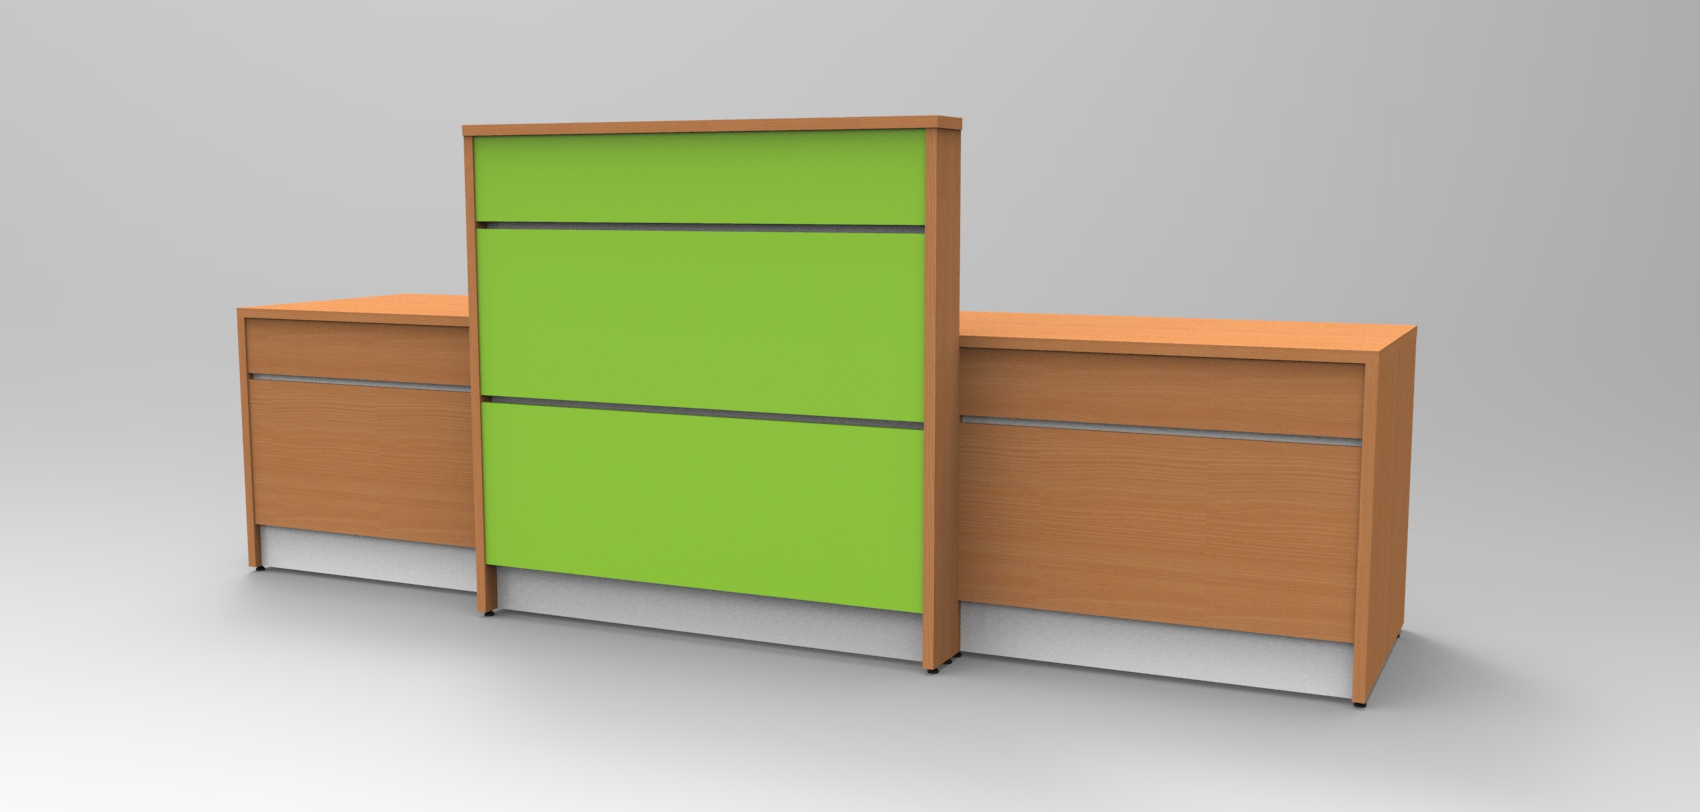 Image 10U Union reception desk - Beech and Lime Green